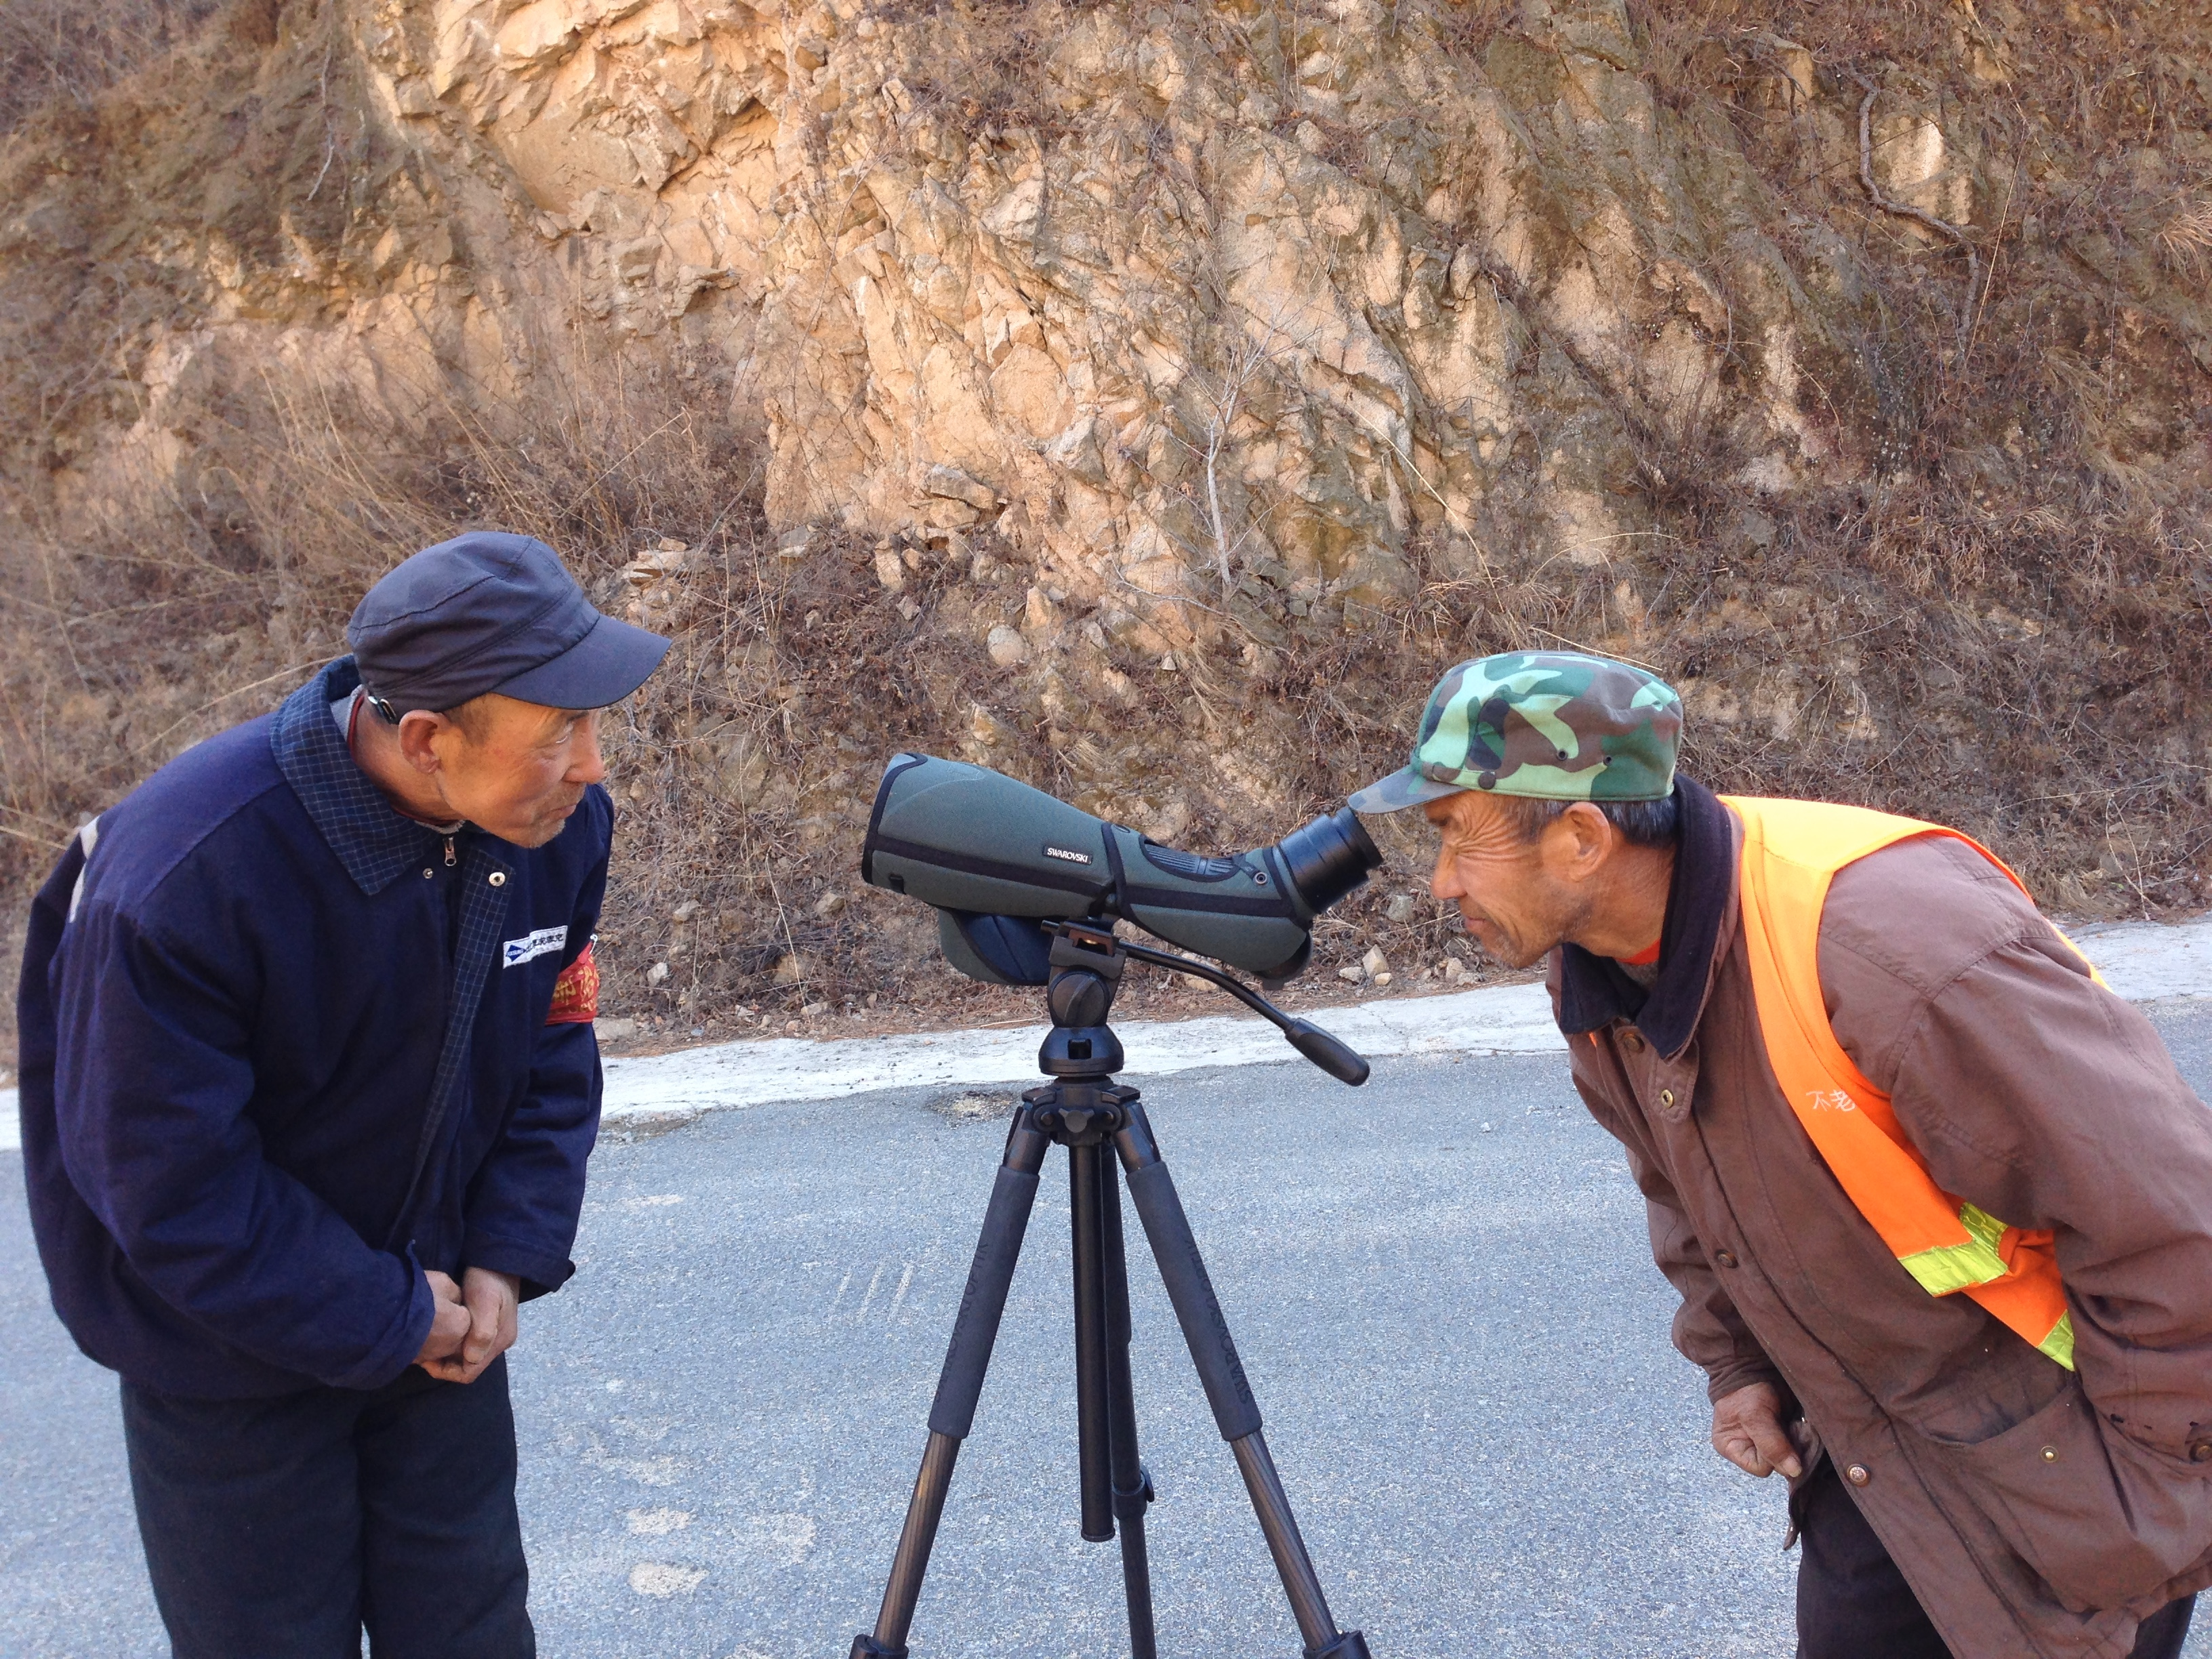 Is it a gun? A camera? Introducing the locals to birding at Miyun Reservoir.